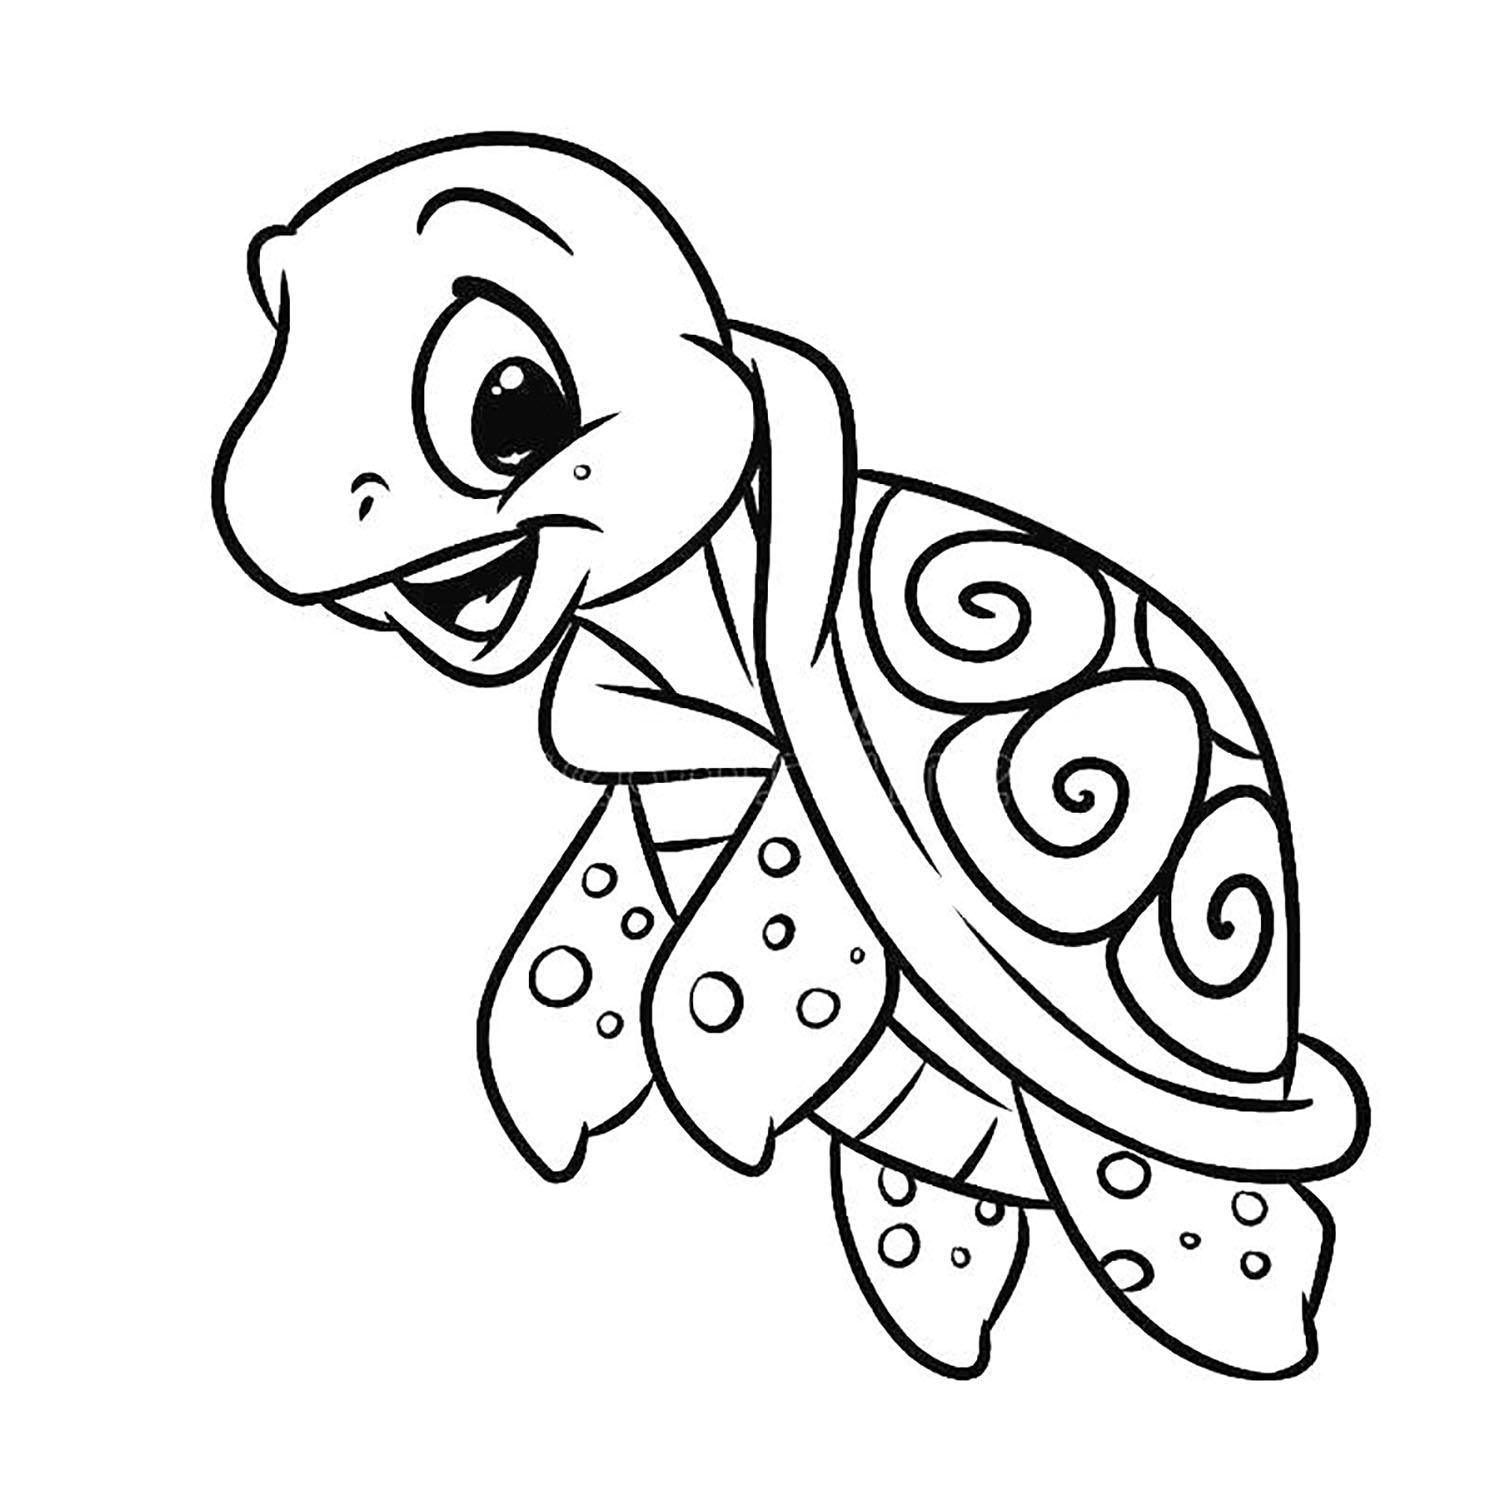 turtle pictures to color sea turtle drawing color at getdrawings free download color turtle pictures to